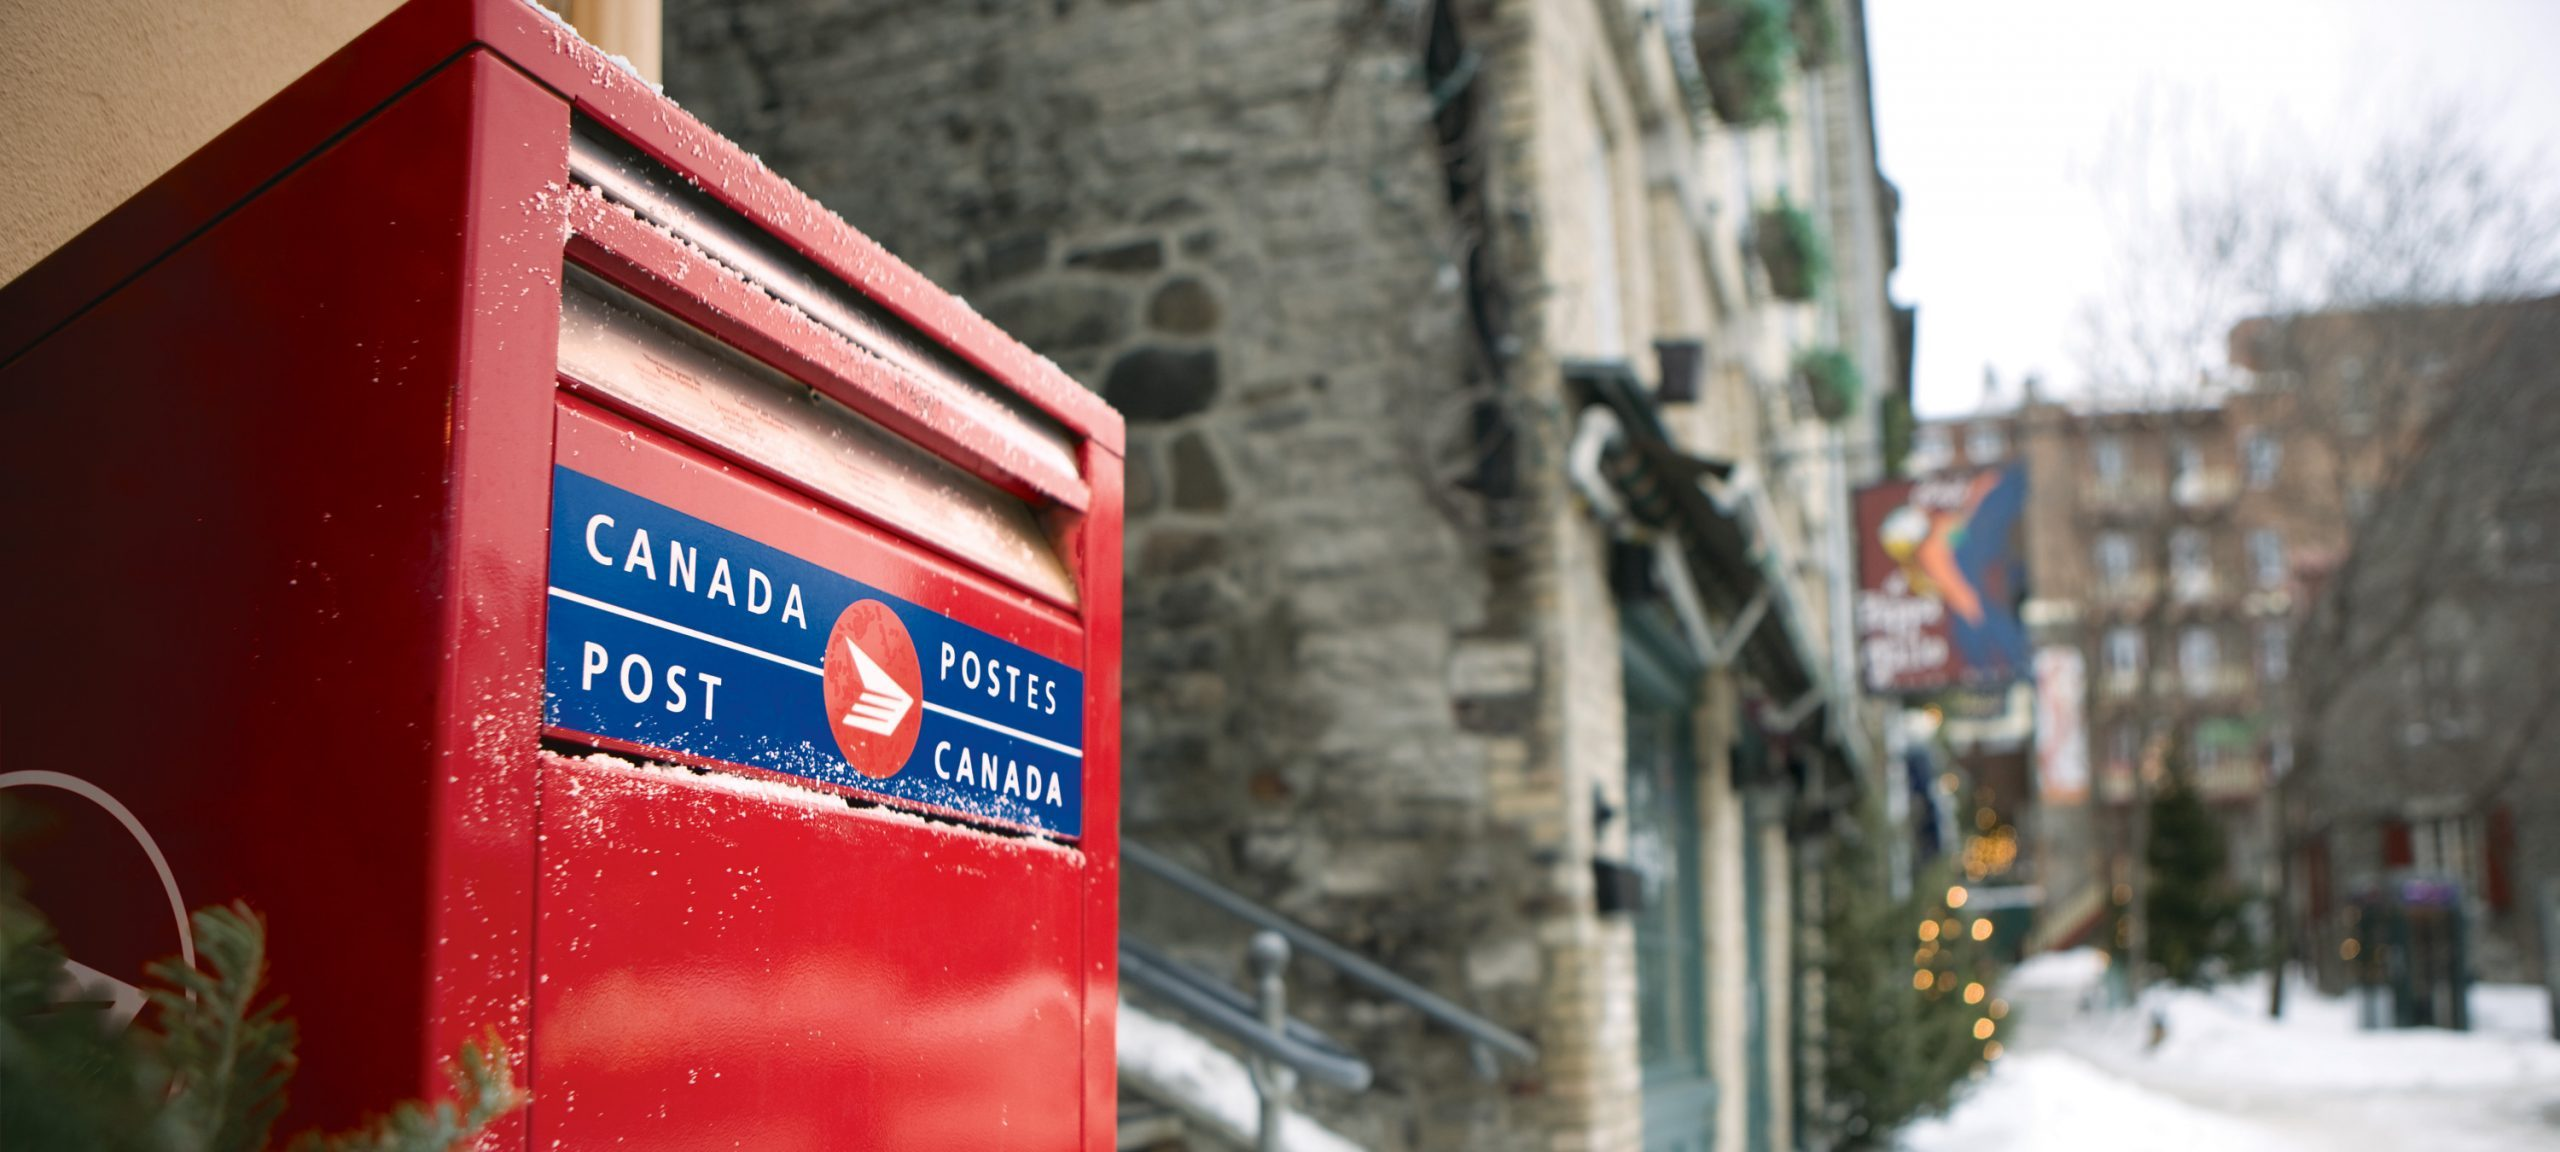 Canada Post Offer Doesn't Cut It: Union